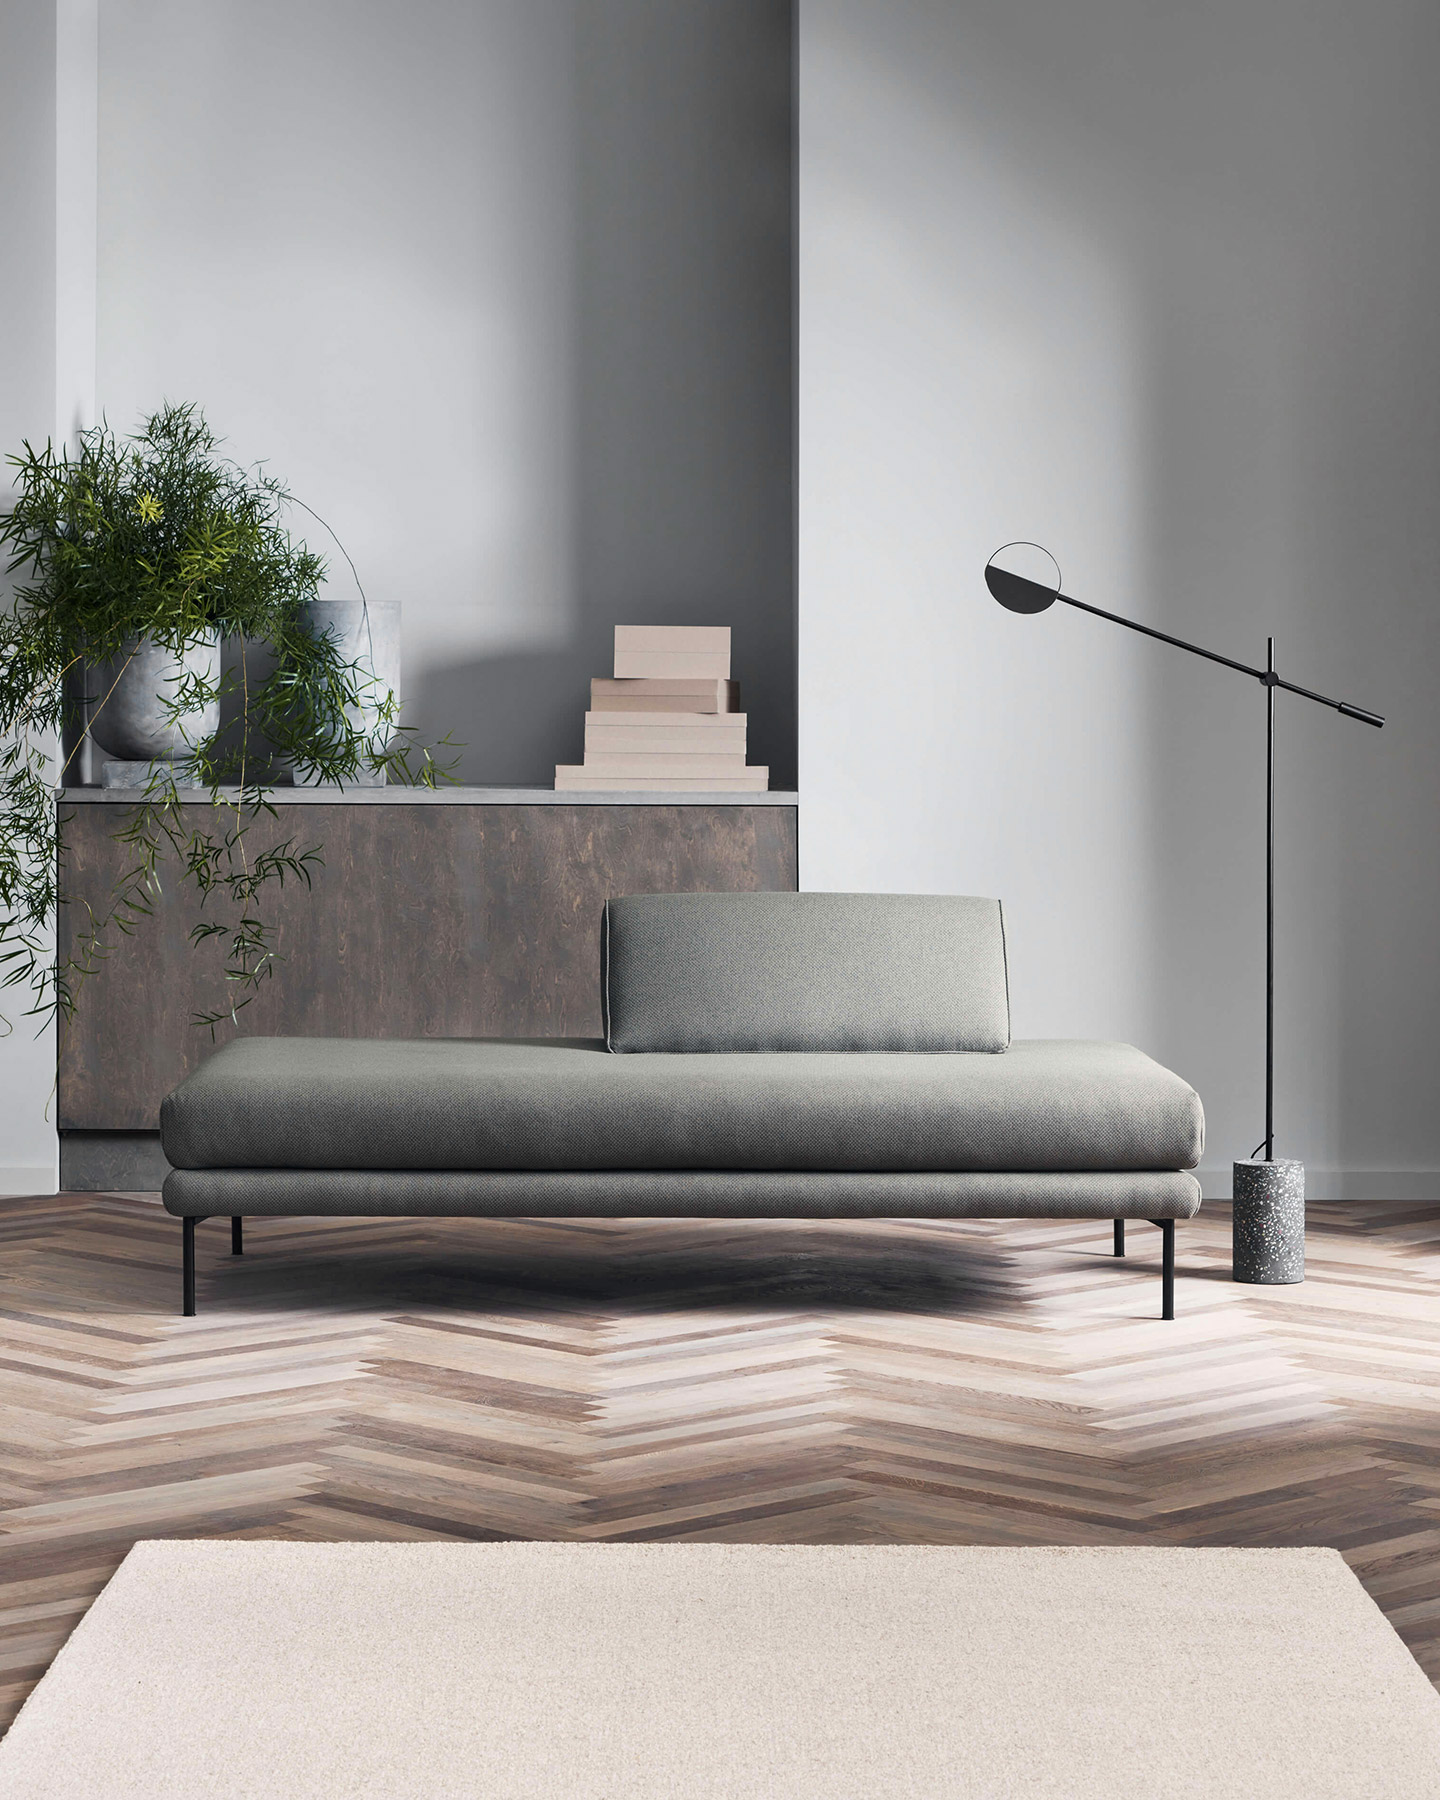 Jerome daybed by Bolia in grey green fabric